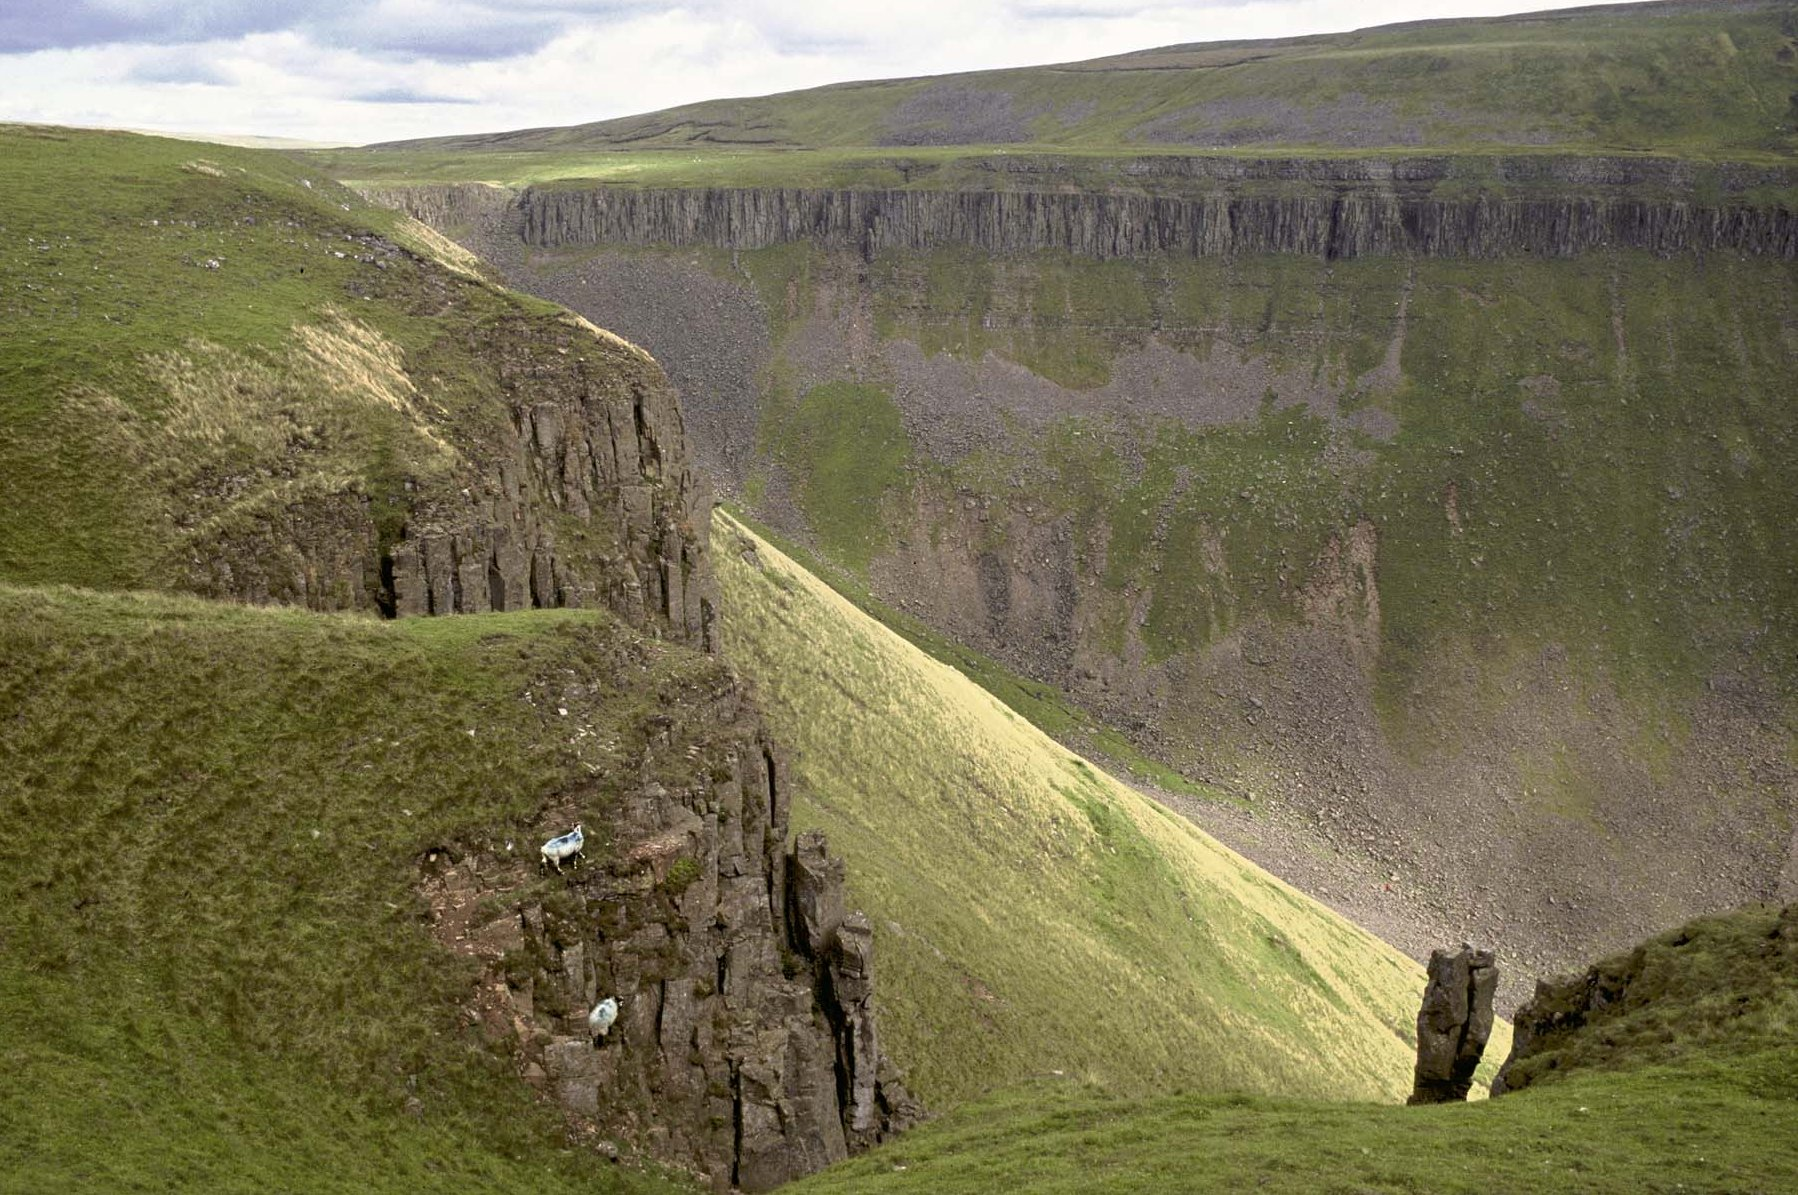 Invitation to Pennines trek